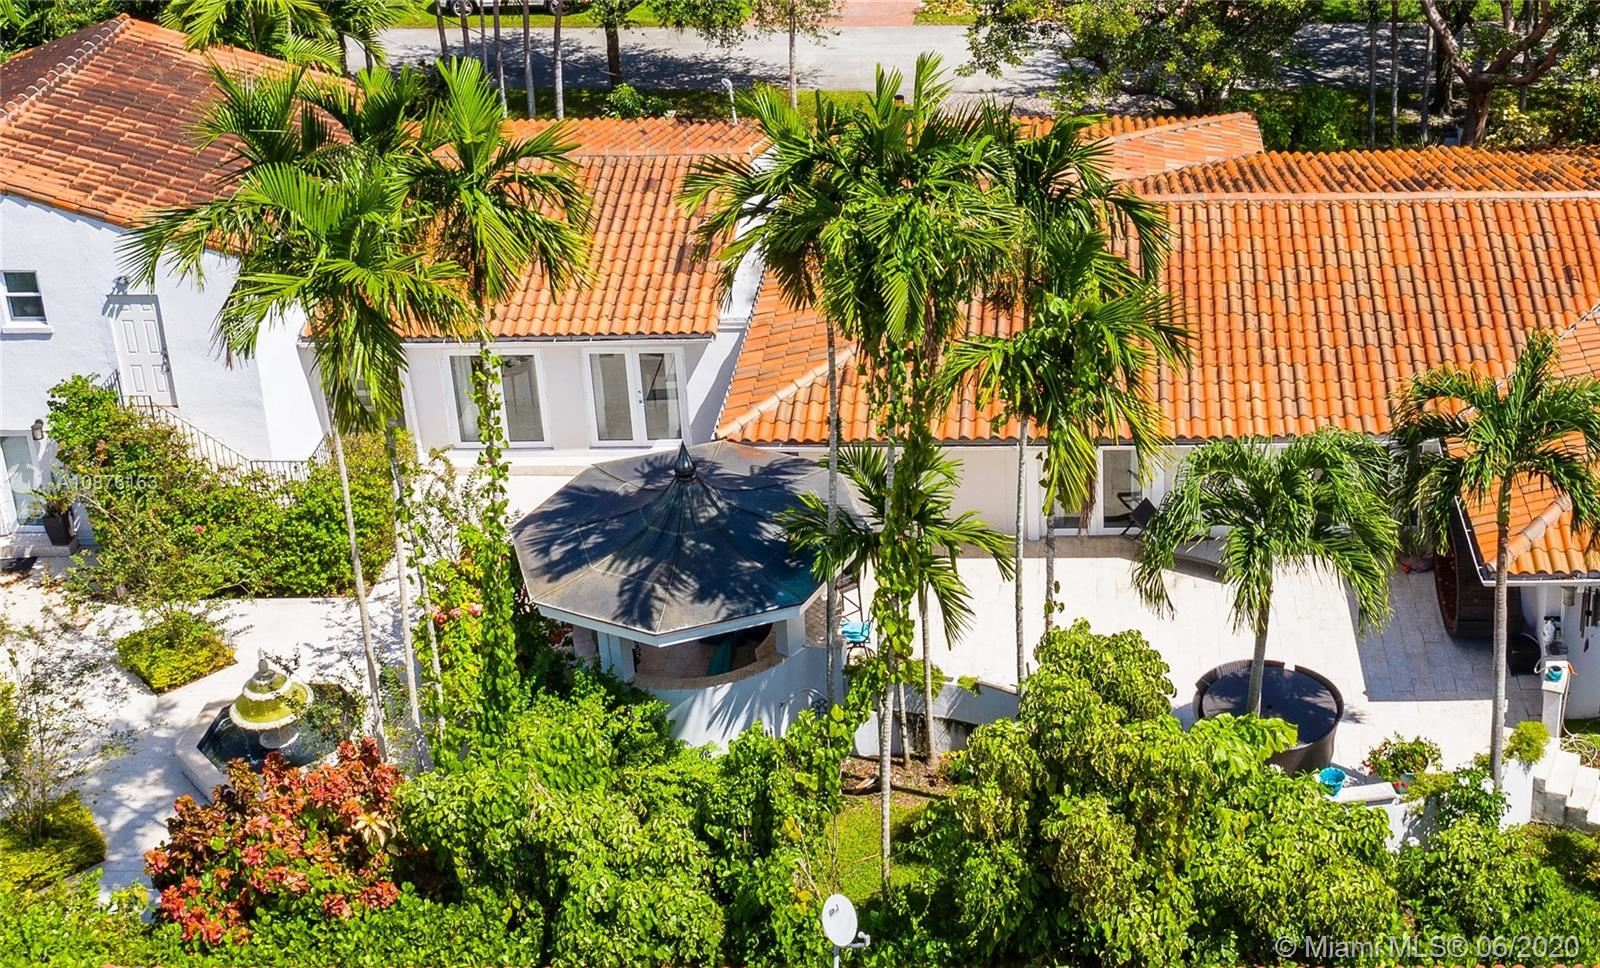 1101 Coral Wy, Coral Gables, FL 33134 - #: A10876163